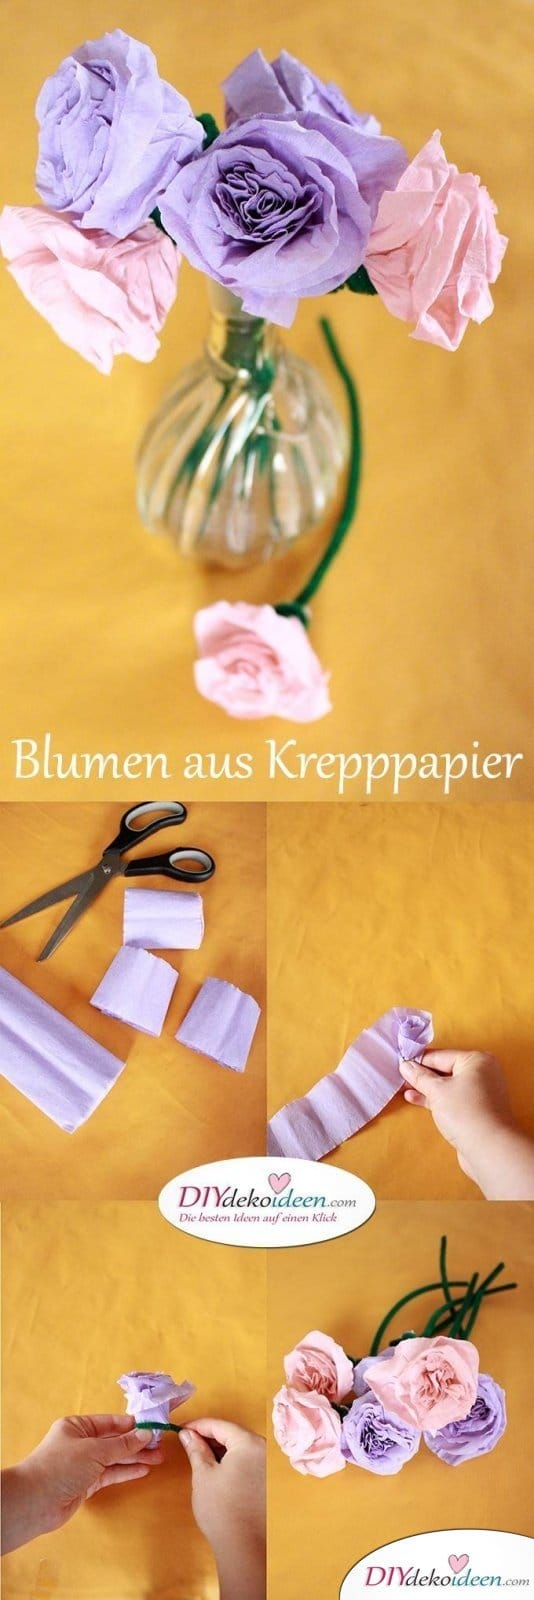 spielerisch rosen basteln mit krepppapier diy bastelideen f r kinder. Black Bedroom Furniture Sets. Home Design Ideas